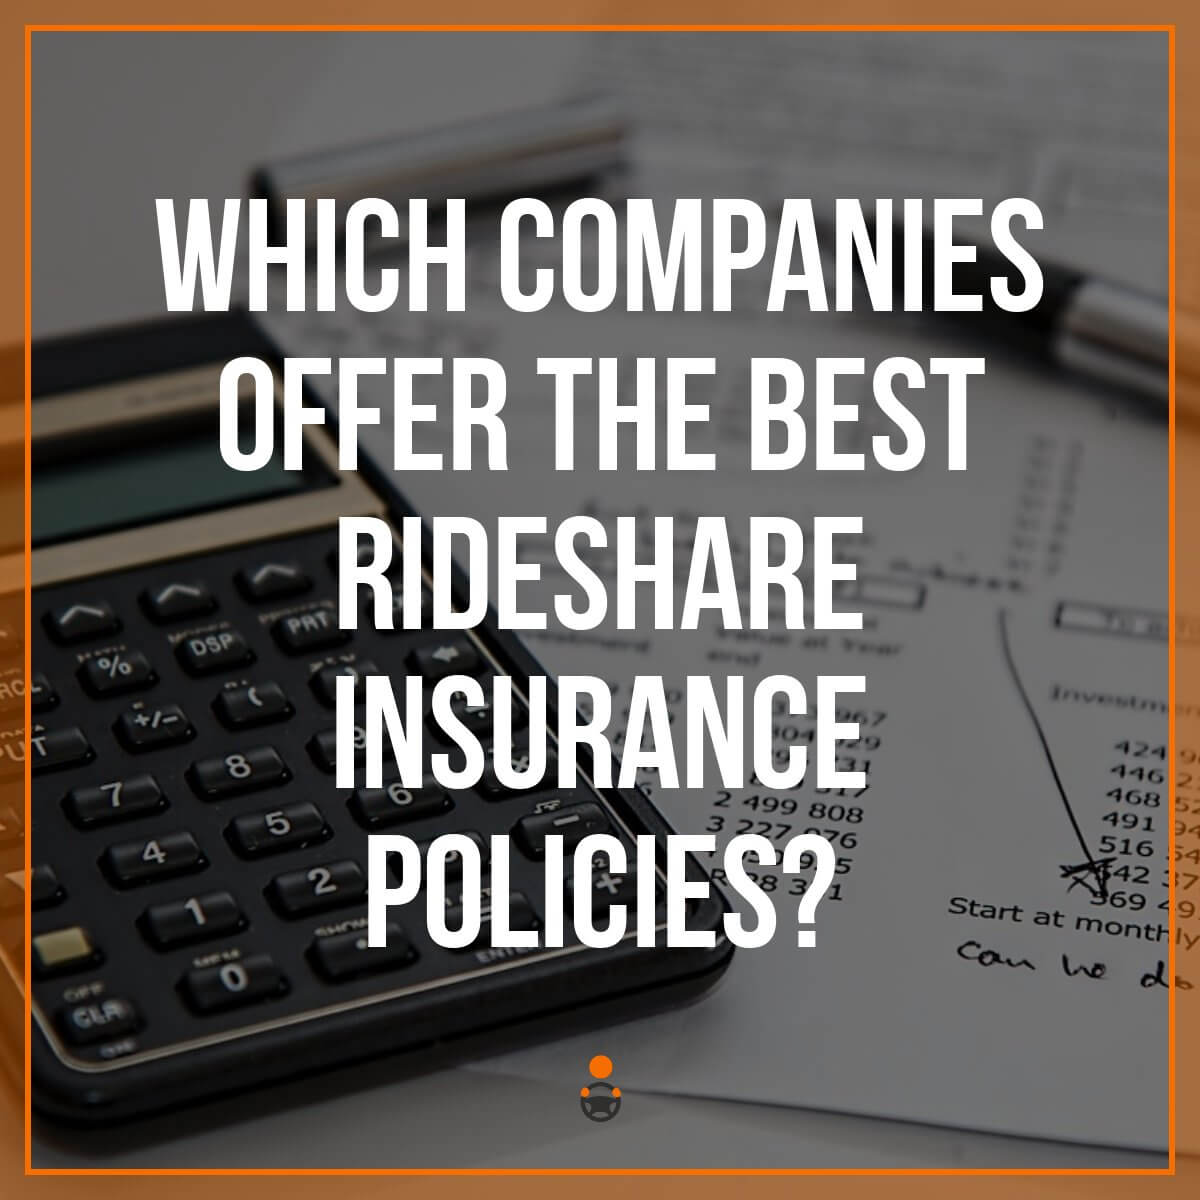 Uber Insurance - Which Company Offers The Best Policy?